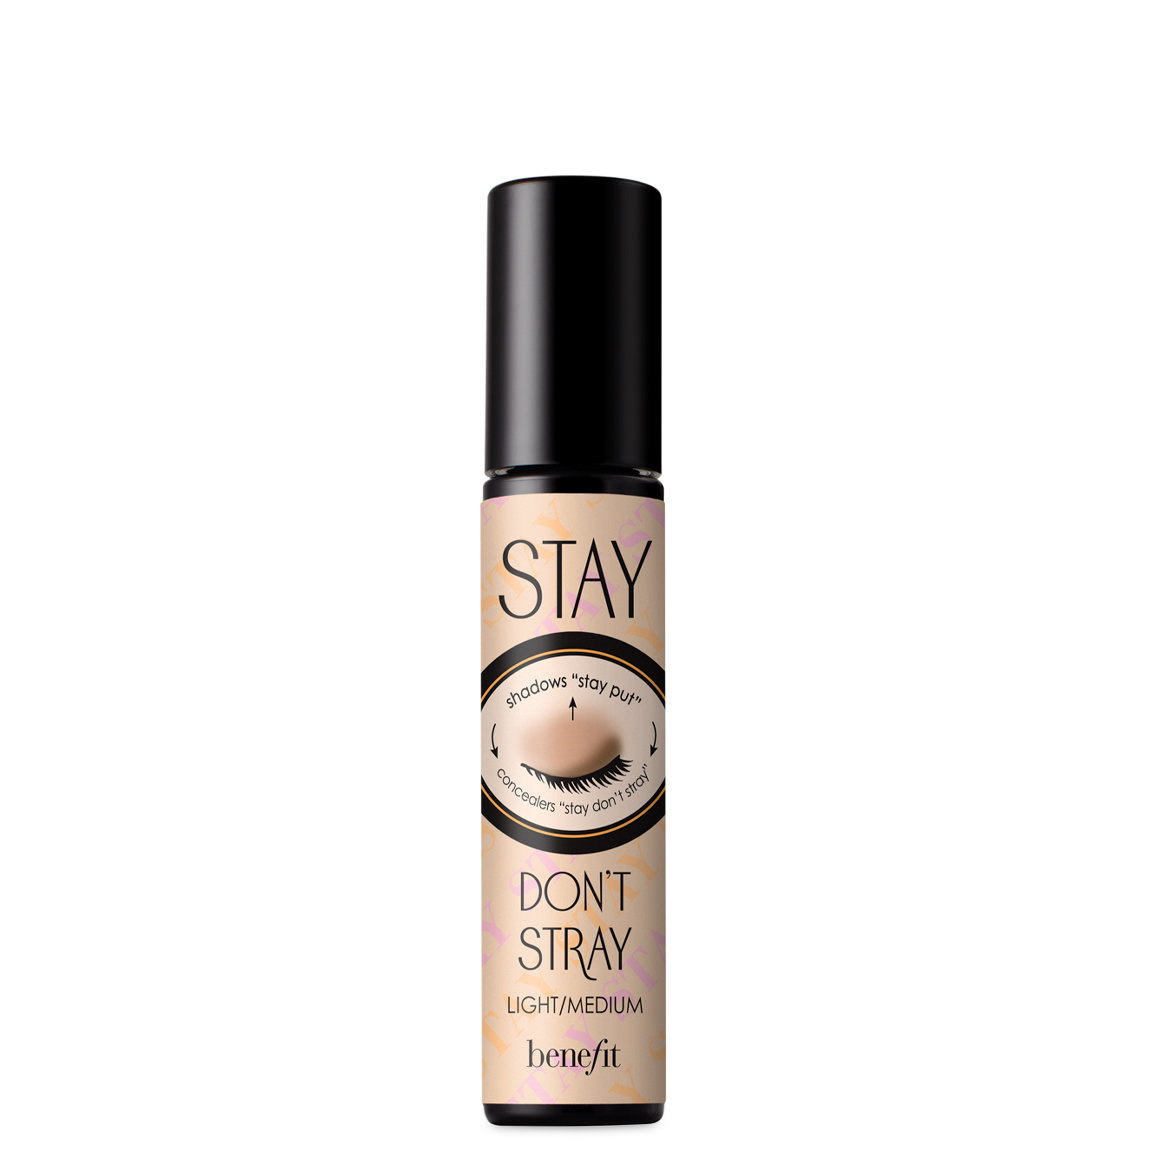 Benefit Cosmetics Stay Don't Stray Eyeshadow Primer alternative view 1 - product swatch.